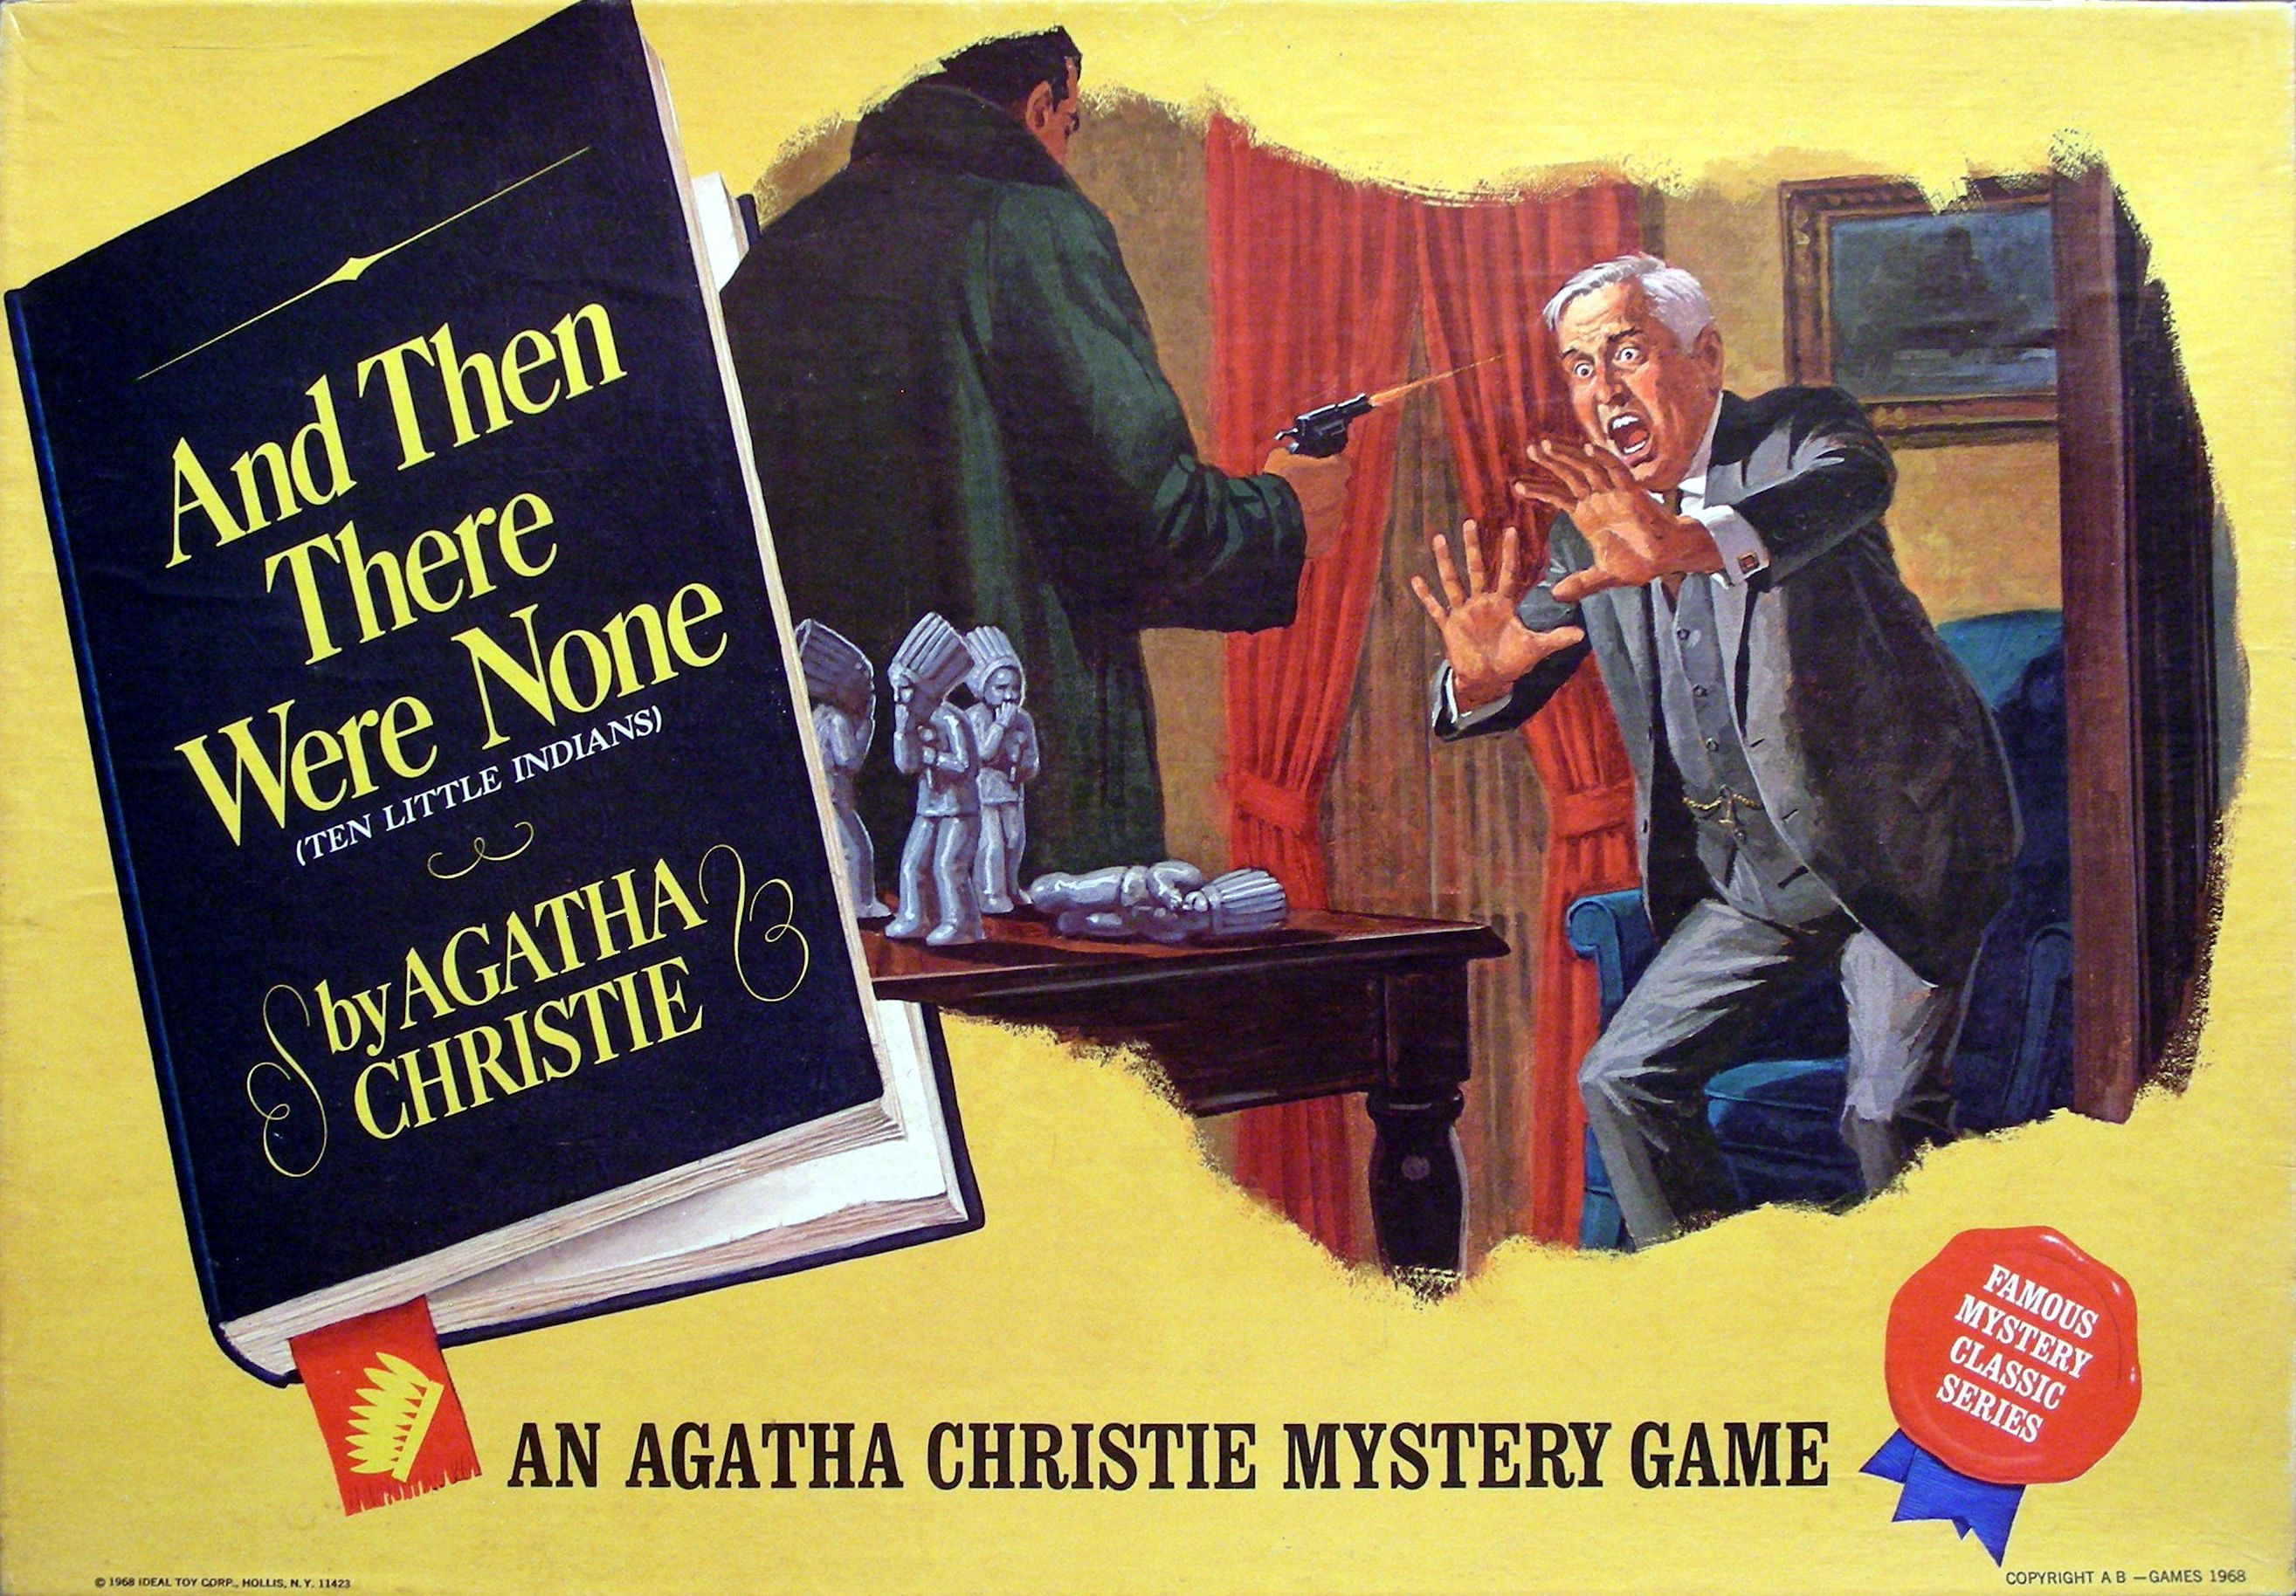 And Then There Were None (Ten Little Indians)